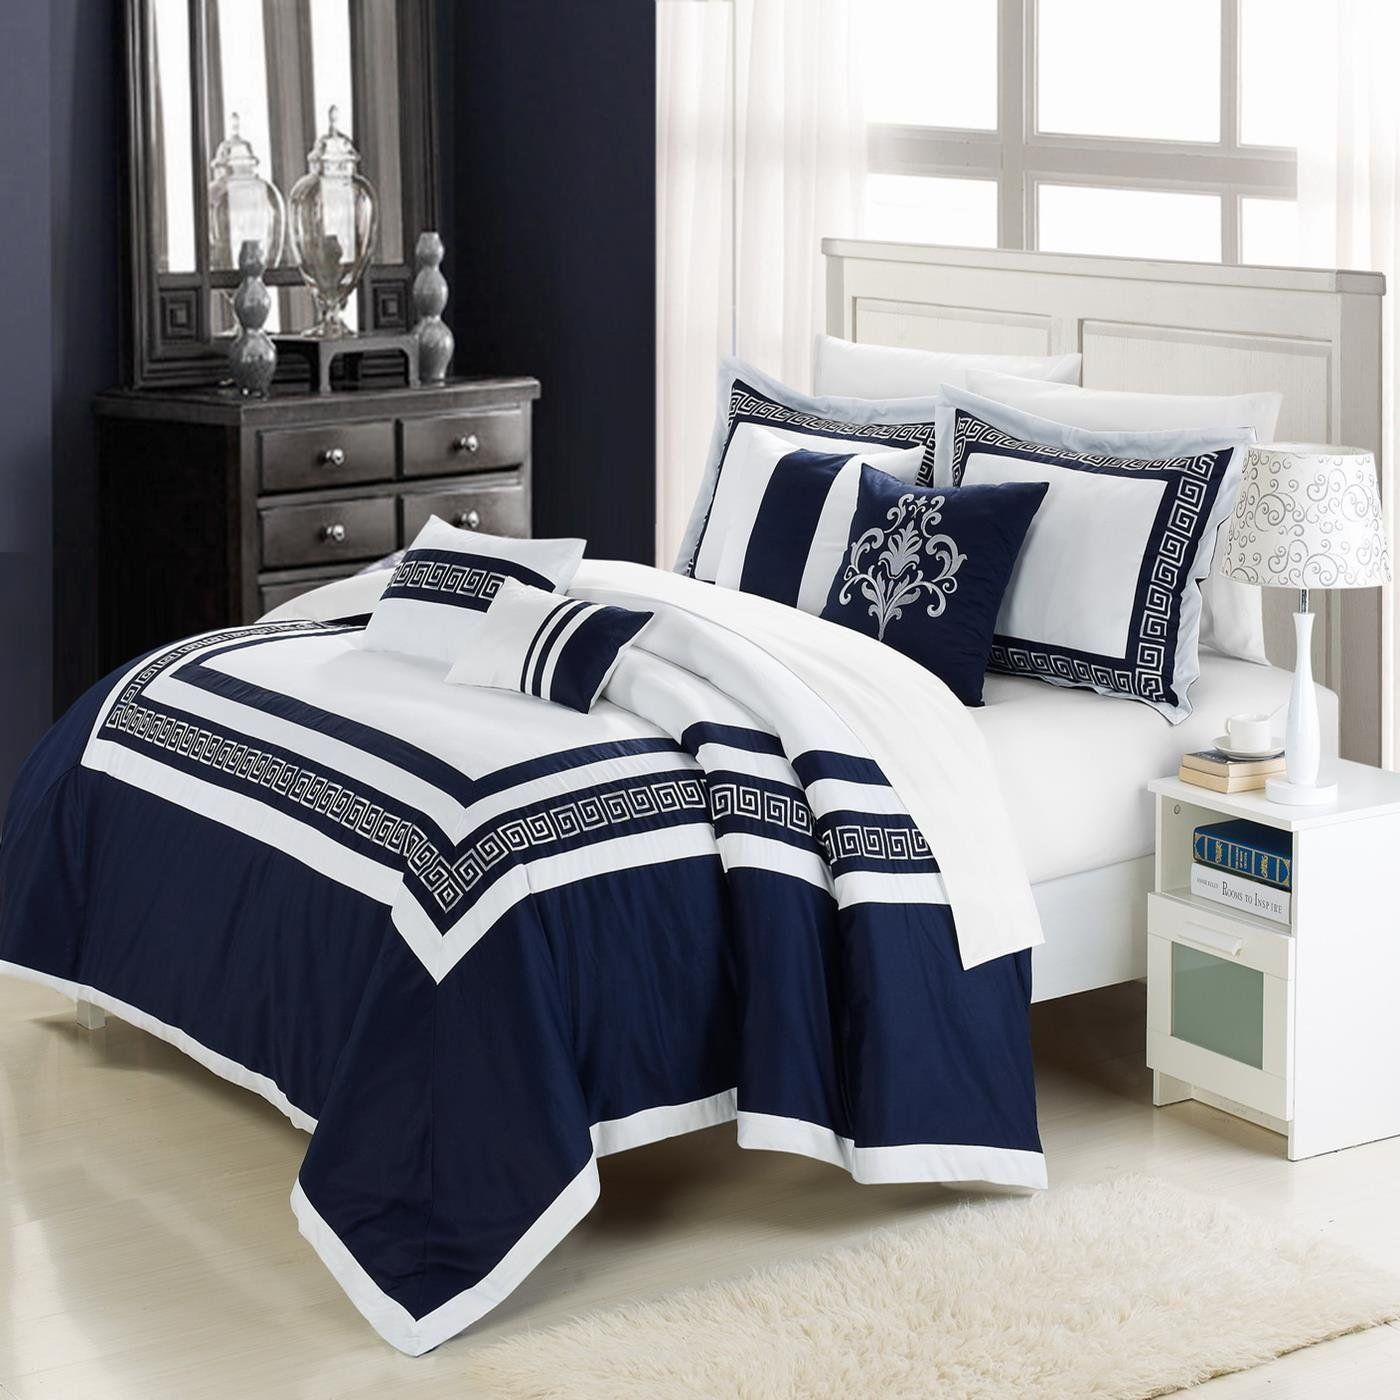 Navy Blue And White Bedding Comforter Sets Blue Bedroom Blue